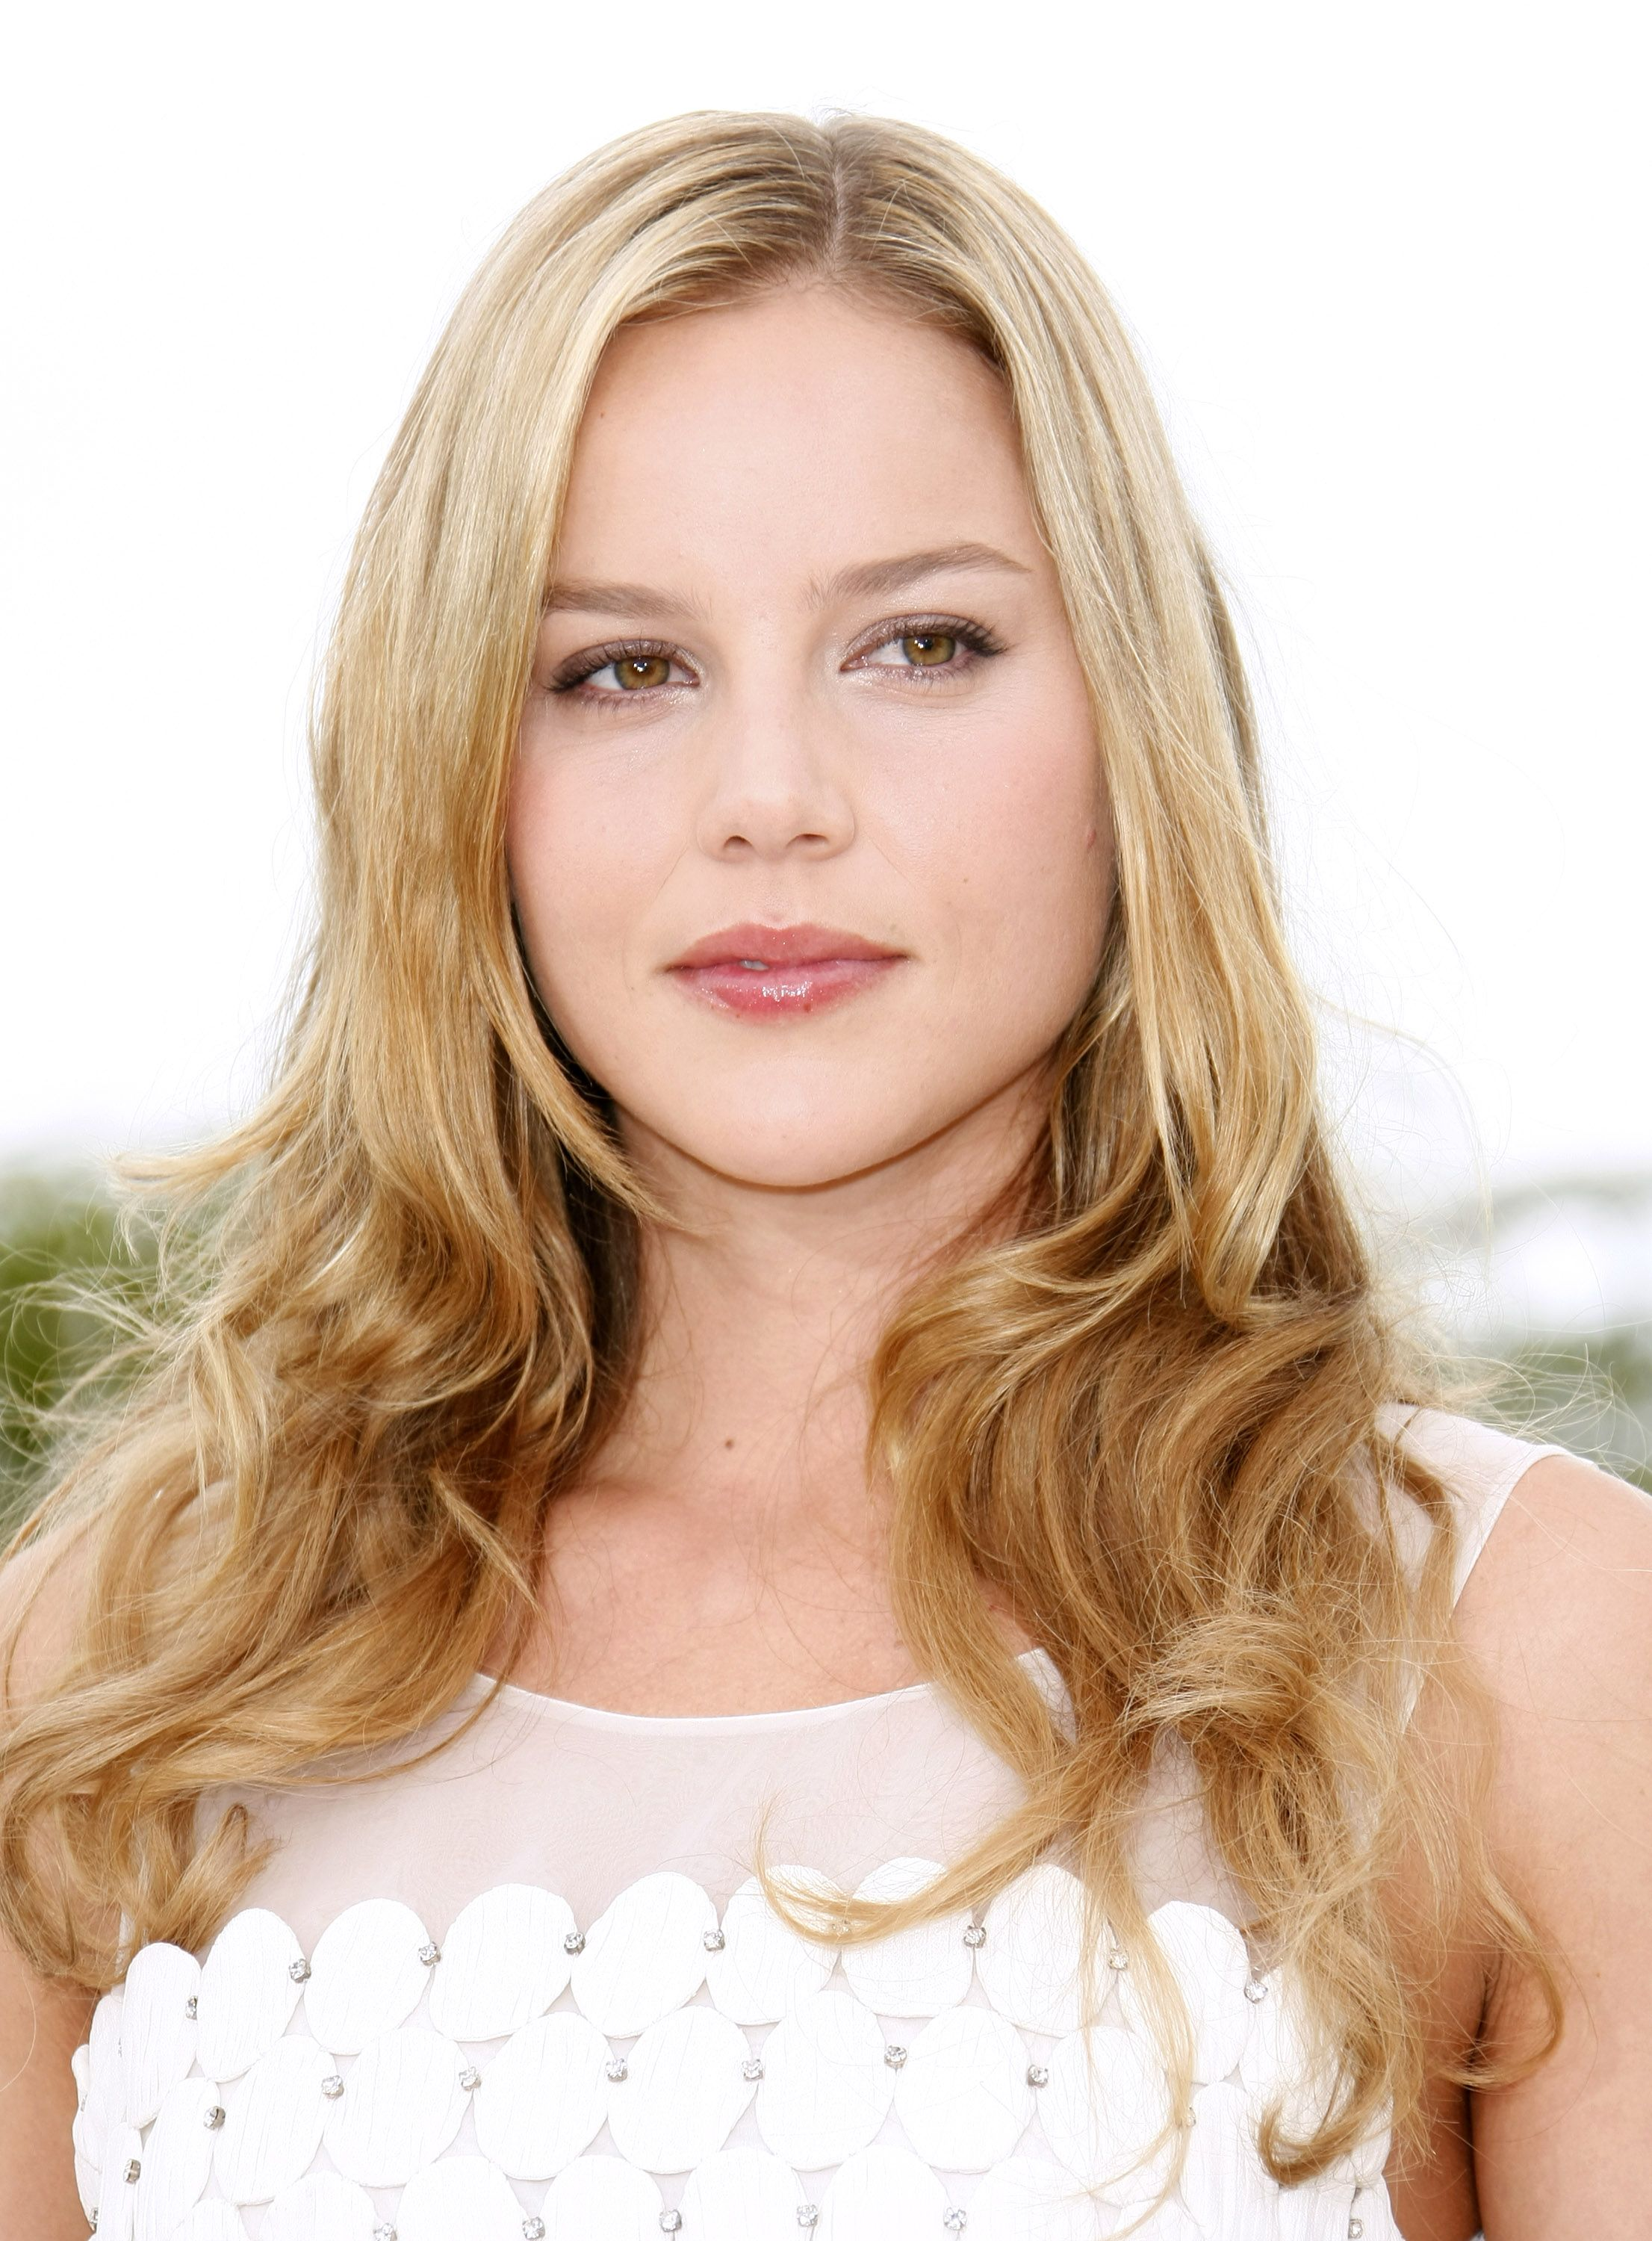 Great Abbie Cornish Abbie cornish, Most beautiful